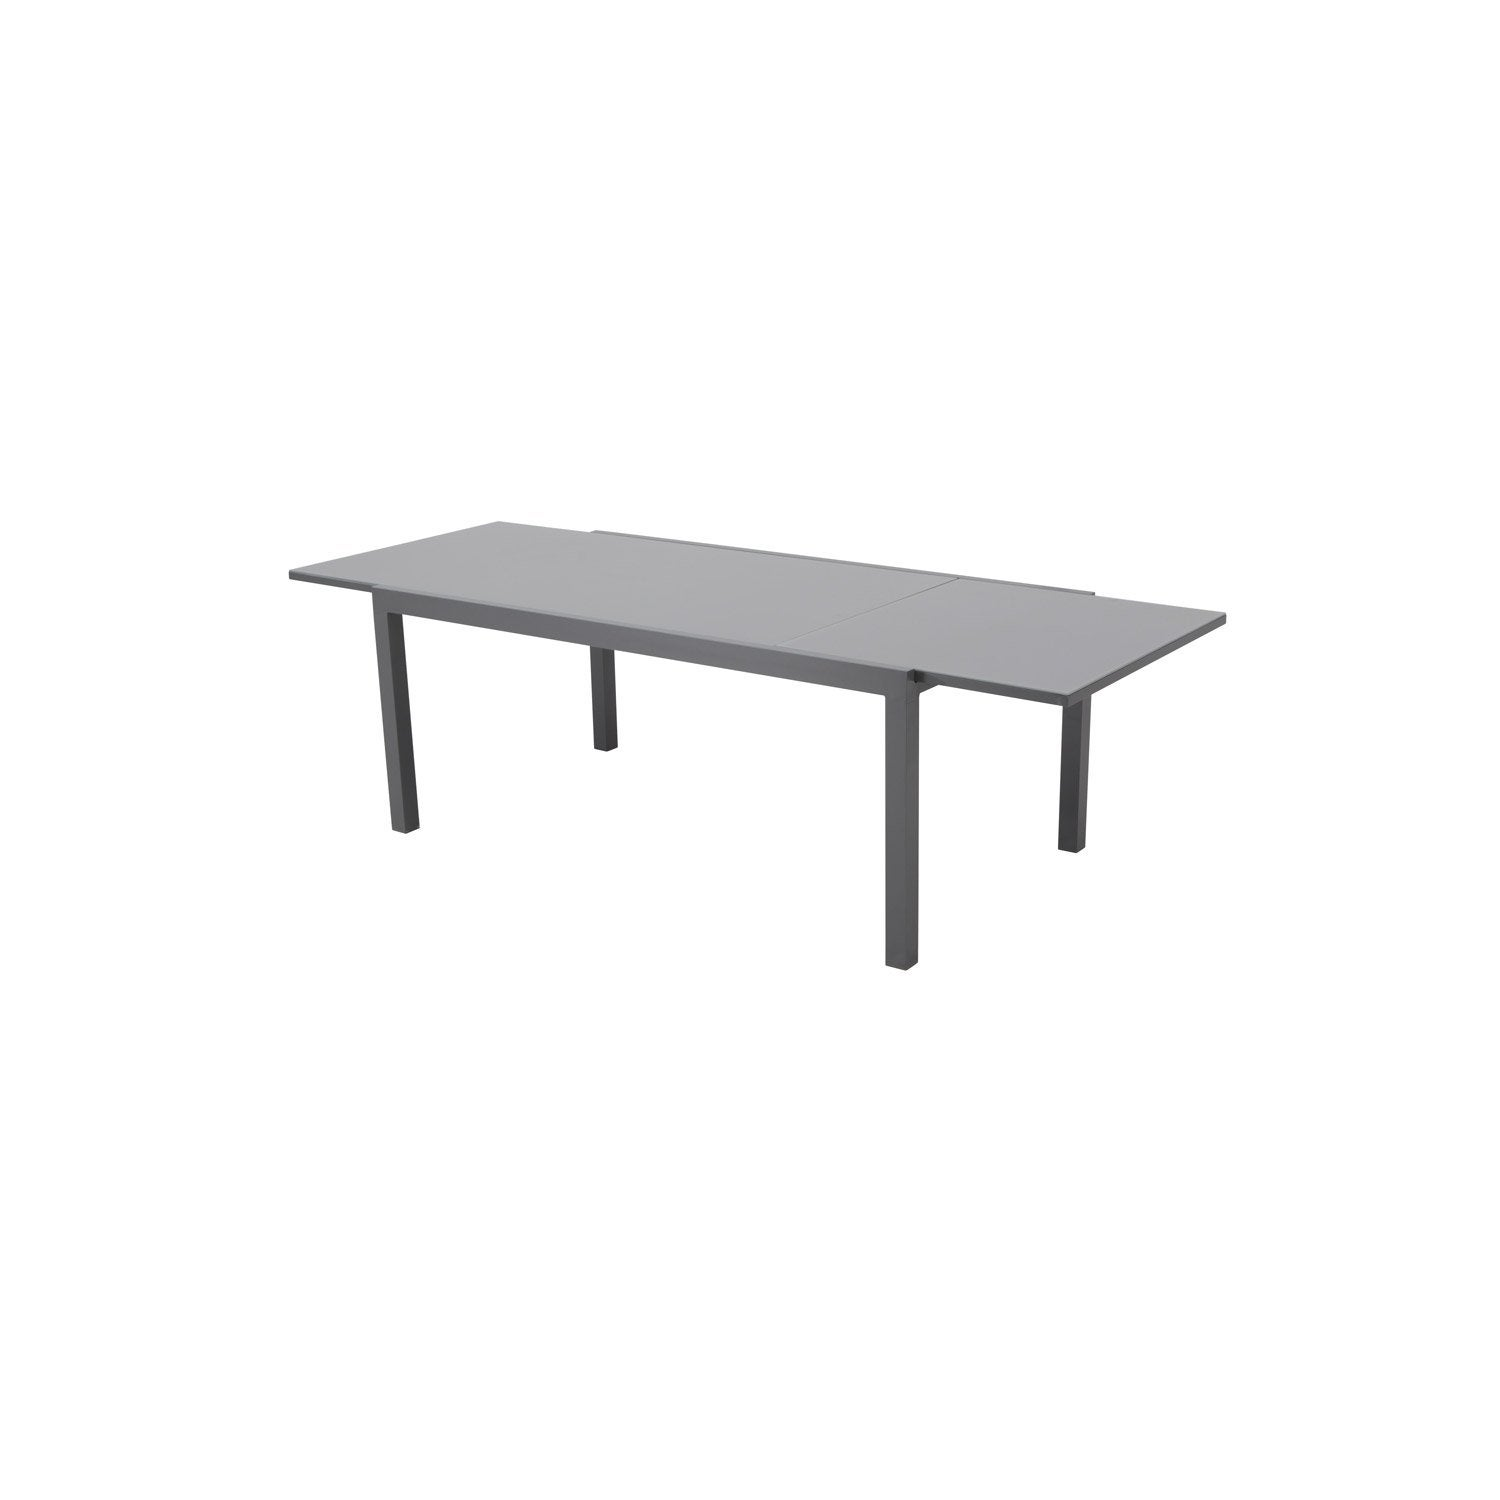 table-de-jardin-naterial-lisboa-rectangulaire-gris-8-personnes Incroyable De Table Basse Gigogne Conforama